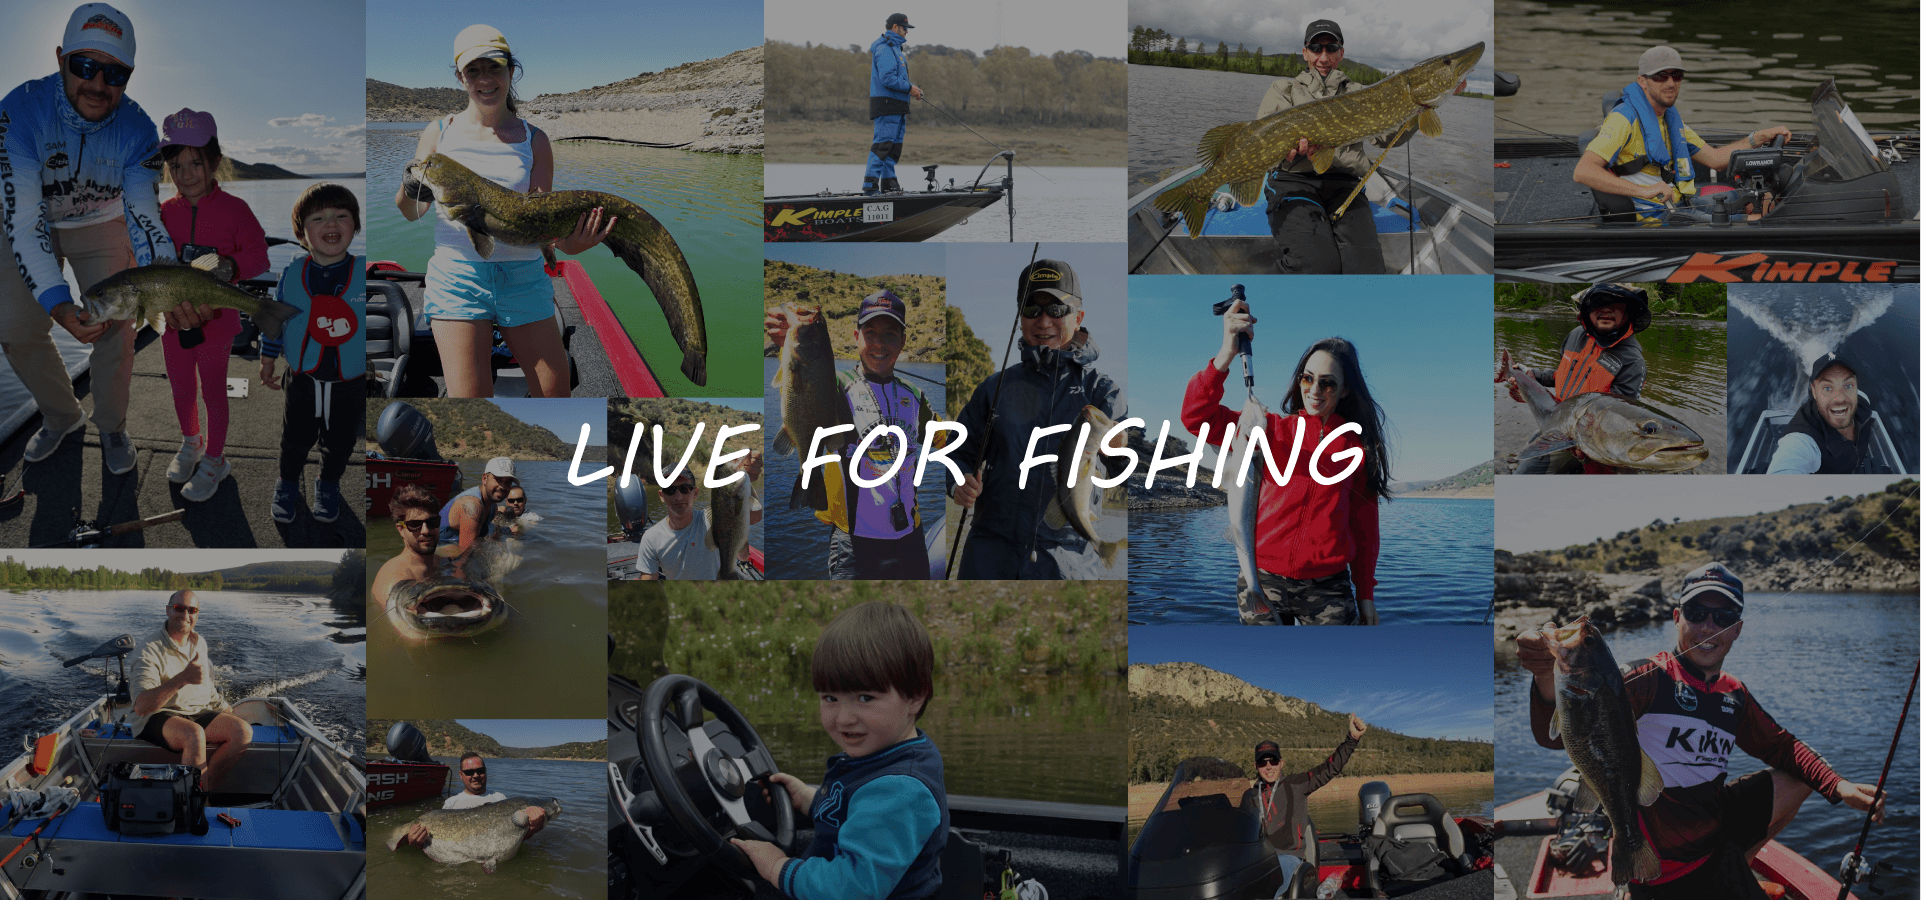 LIVE FOR FISHING